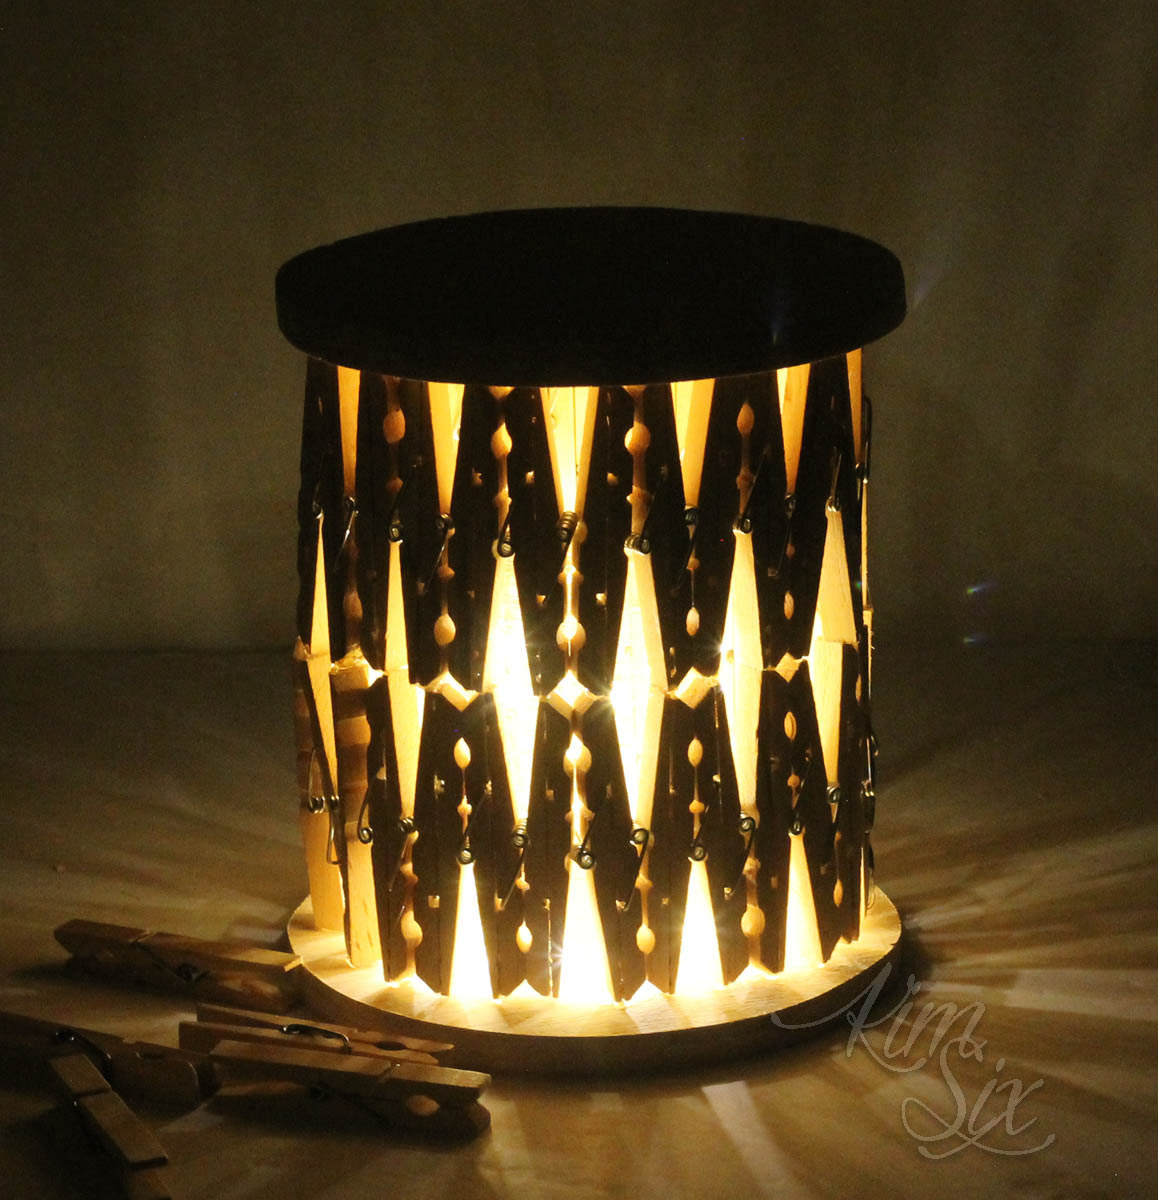 Lantern made of clothespins